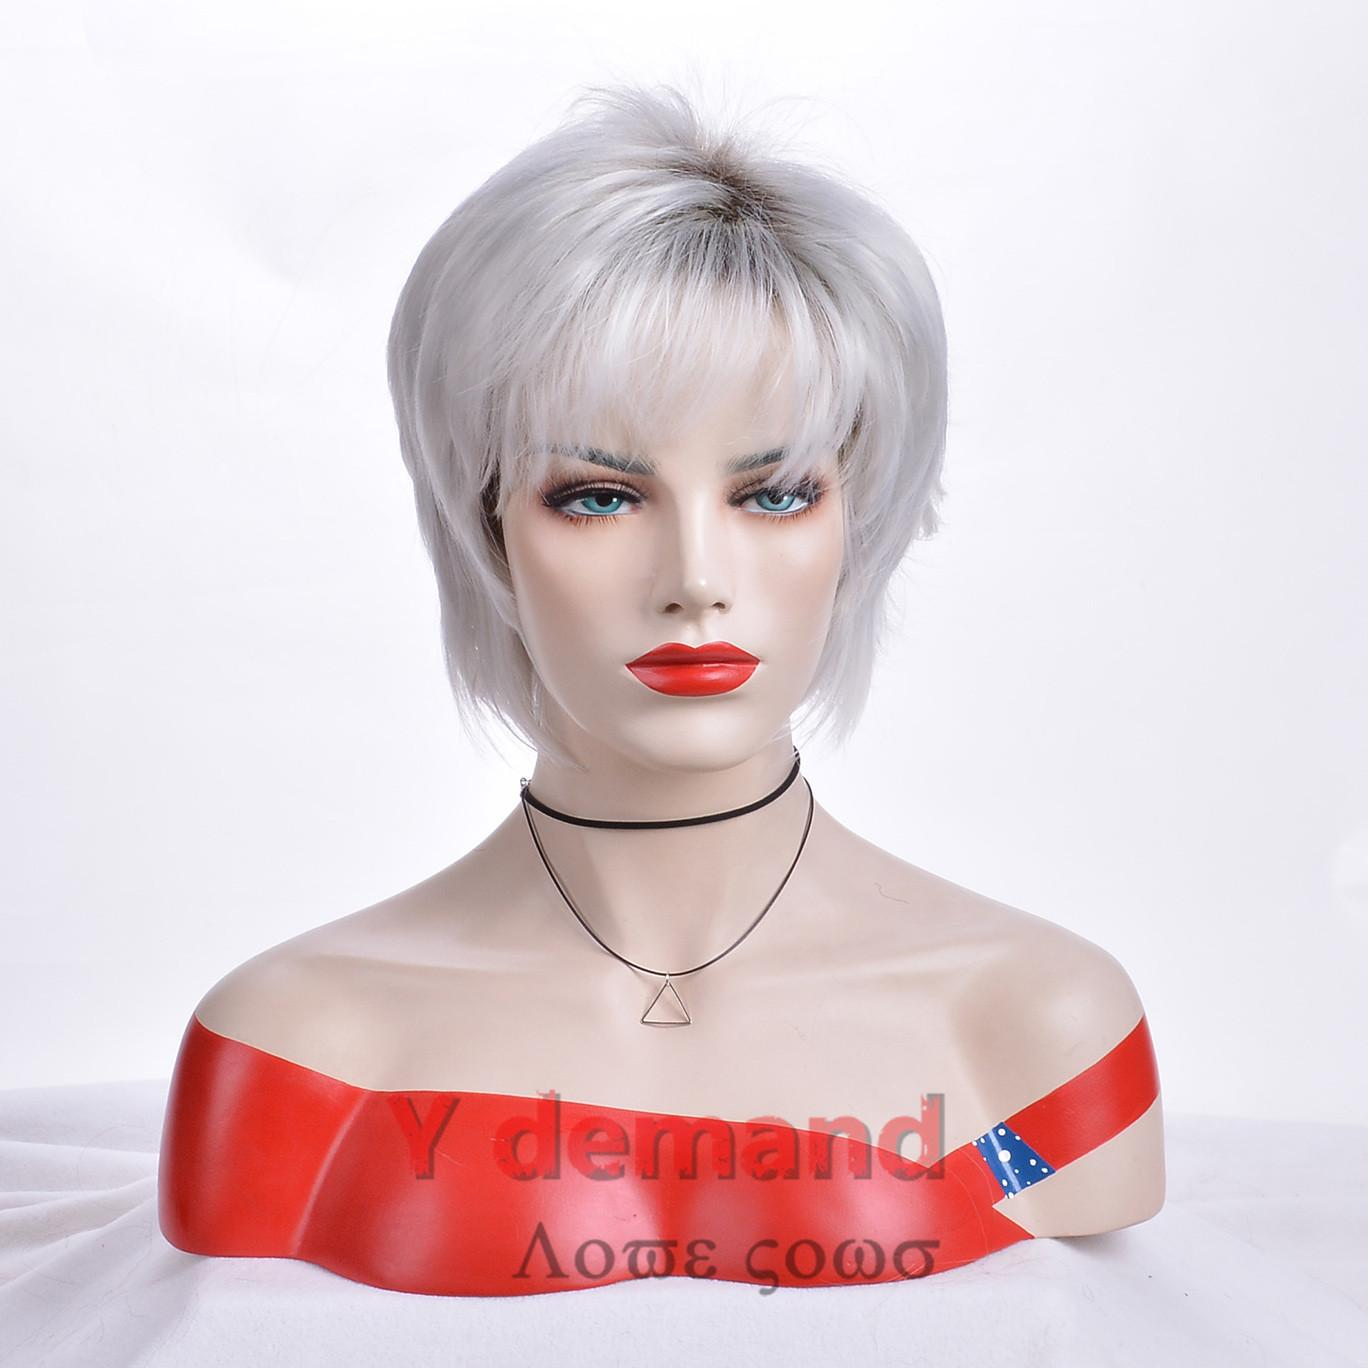 Mother's Day Best Gift Mommy Wig Synthetic Cosplay Wig Halloween Costume Party Hair Wigs for Women Ladies Stylish Short Hairstyle Female Wig